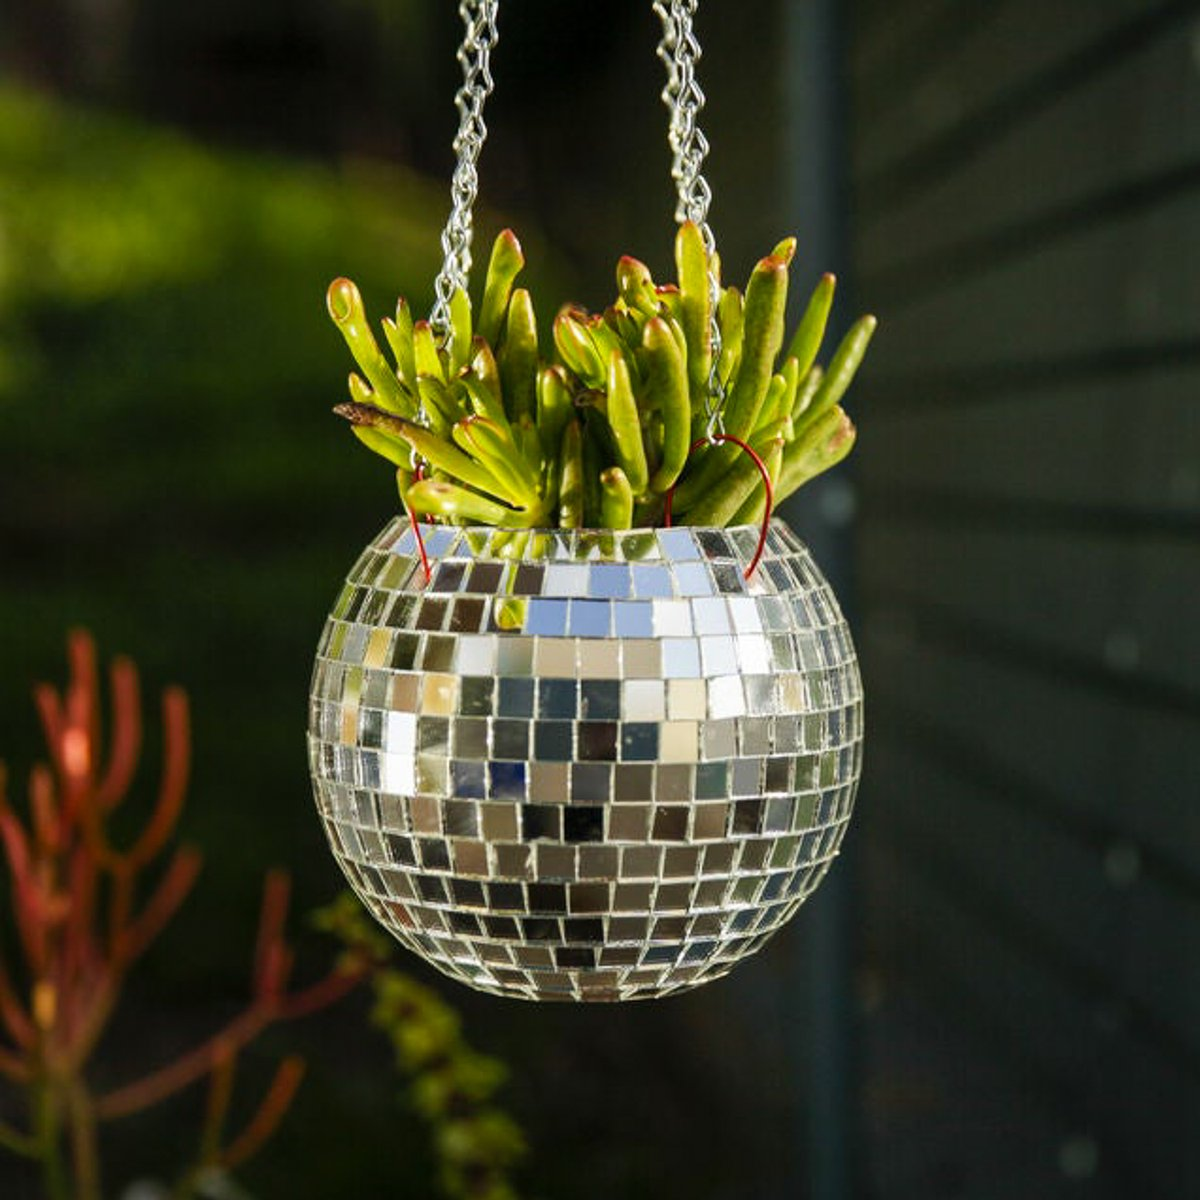 Have a dance party with your plants! Learn how to make an awesome disco ball planter with @audreyObscura   https://t.co/zzAXJvjxTp https://t.co/xCkTuunjZD